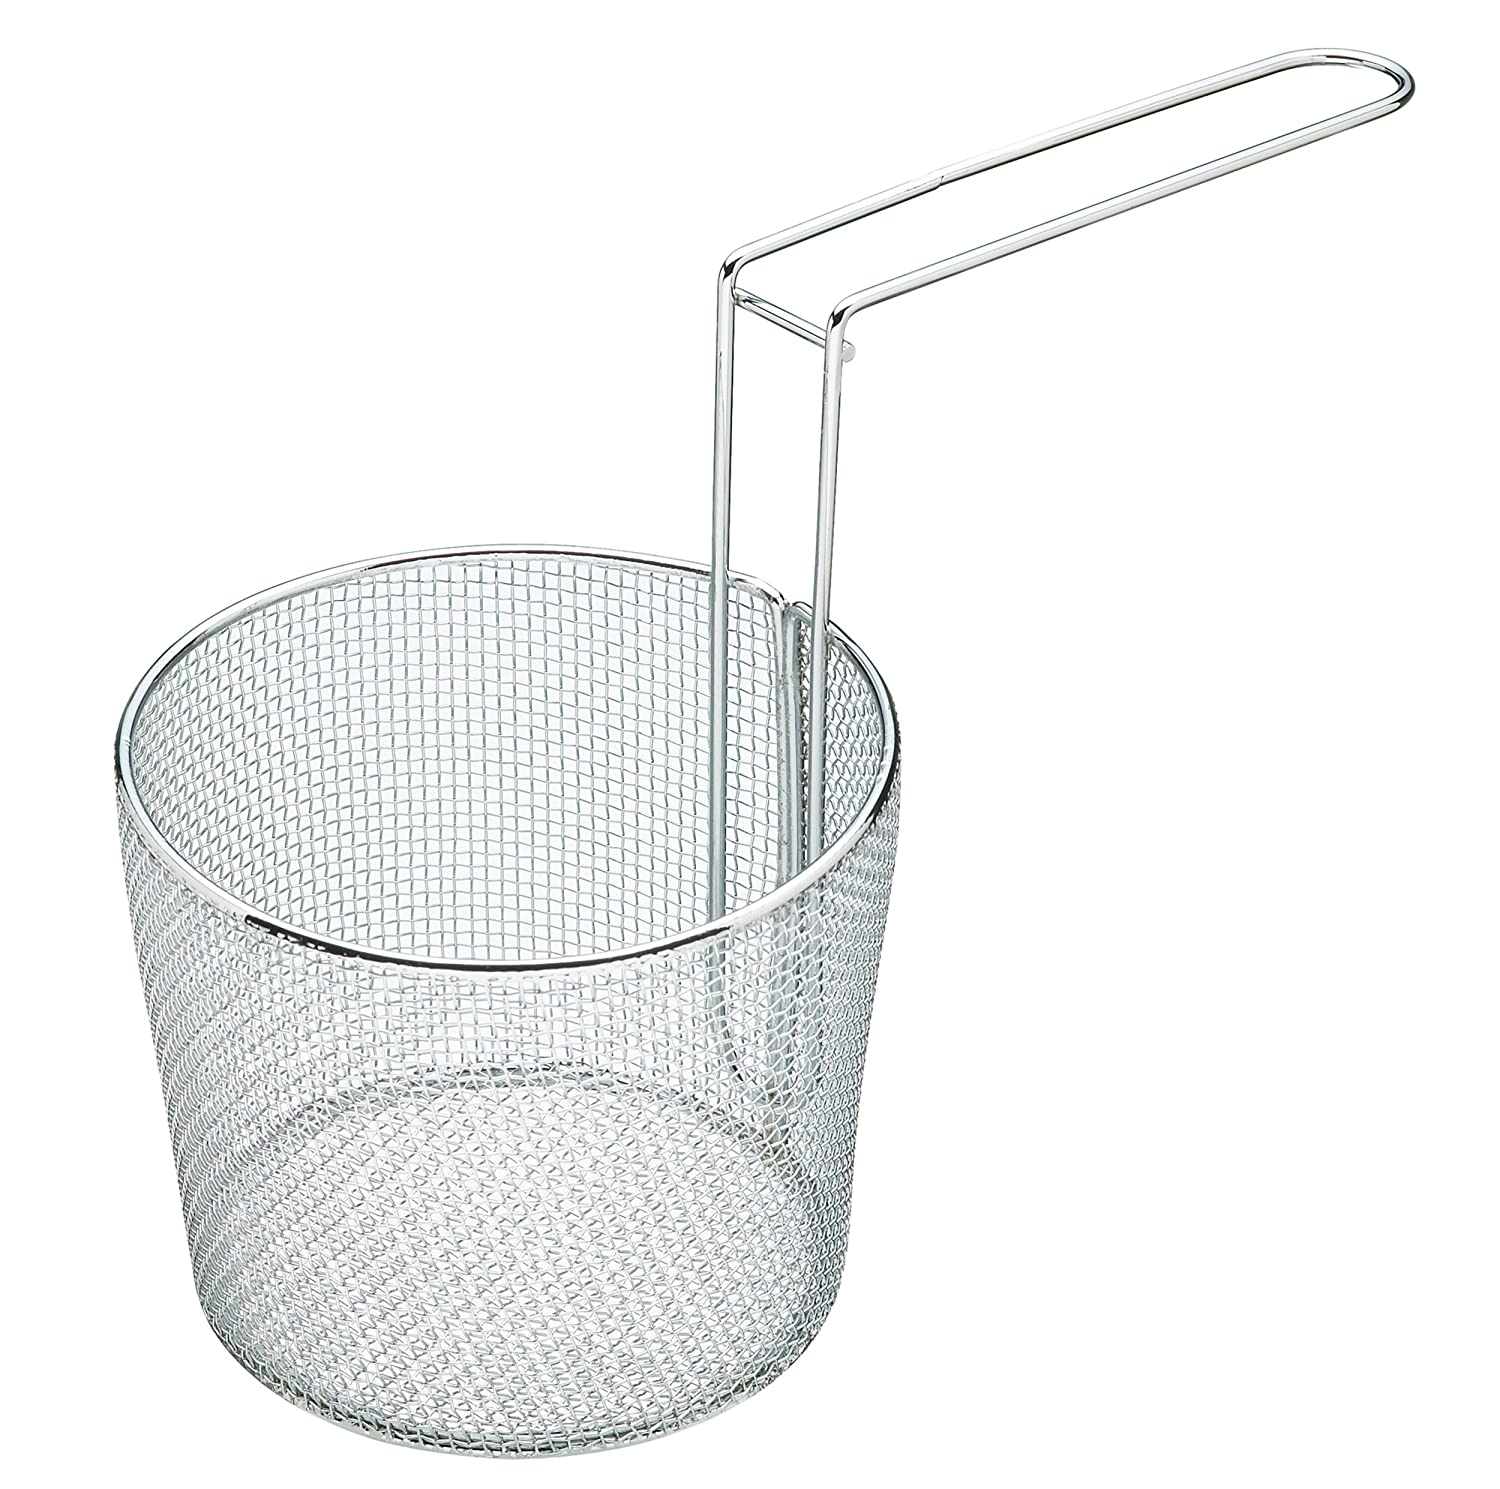 KitchenCraft Stainless Steel Blanching Basket, 16 cm (6.5